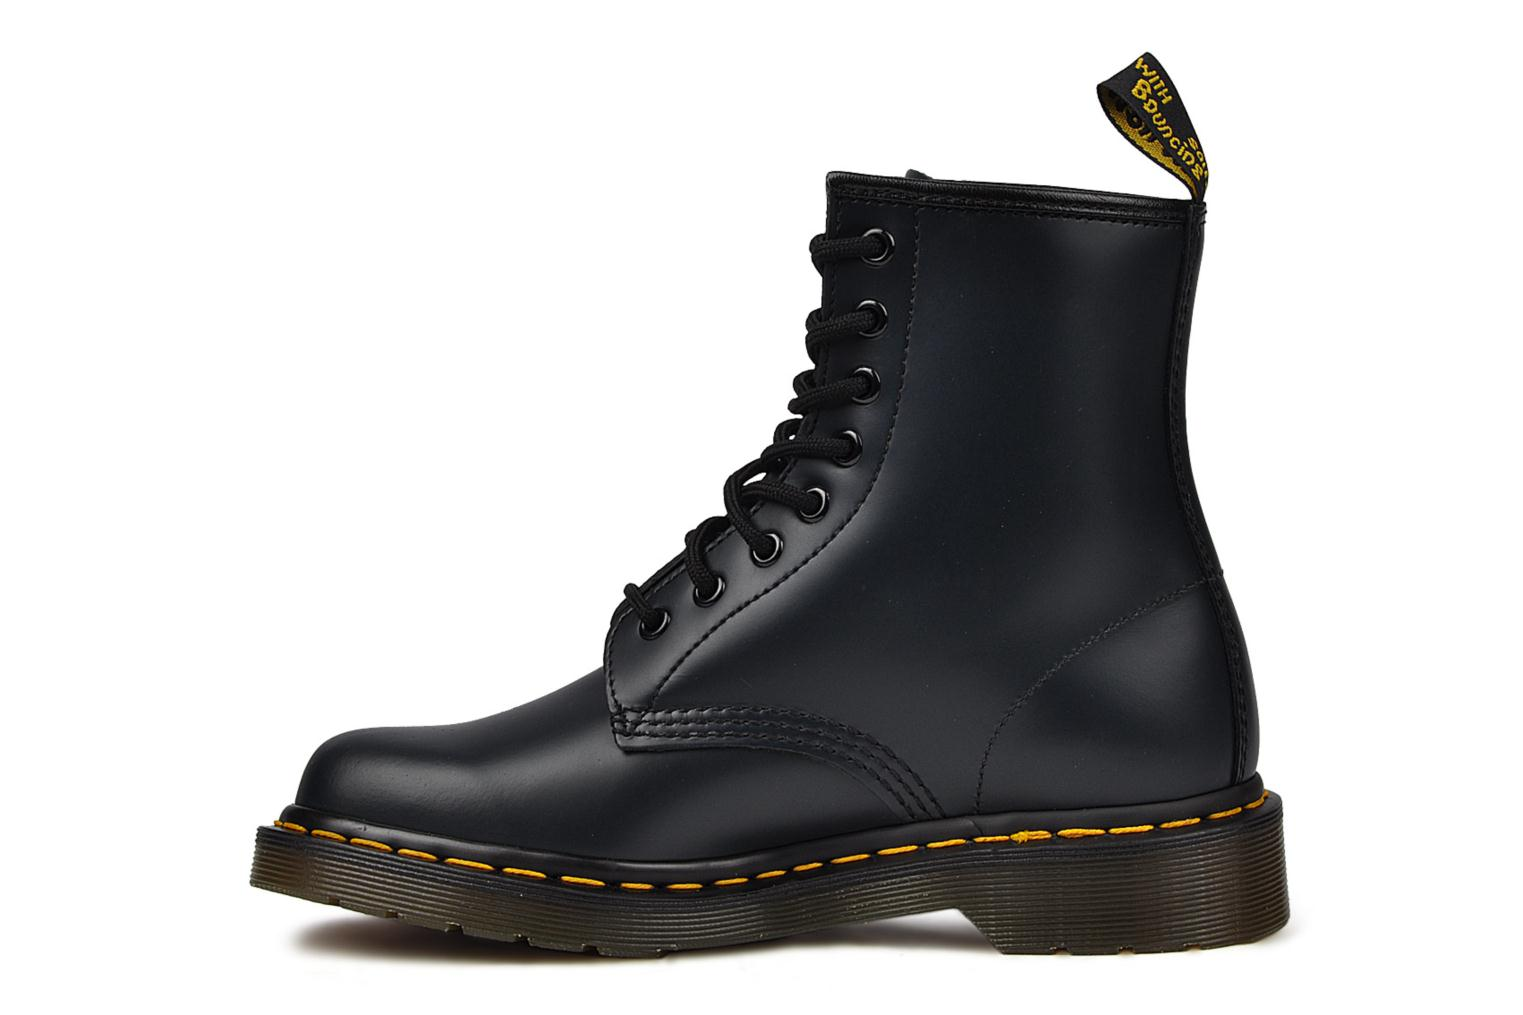 dr martens 1460 w ankle boots in blue at 47885. Black Bedroom Furniture Sets. Home Design Ideas